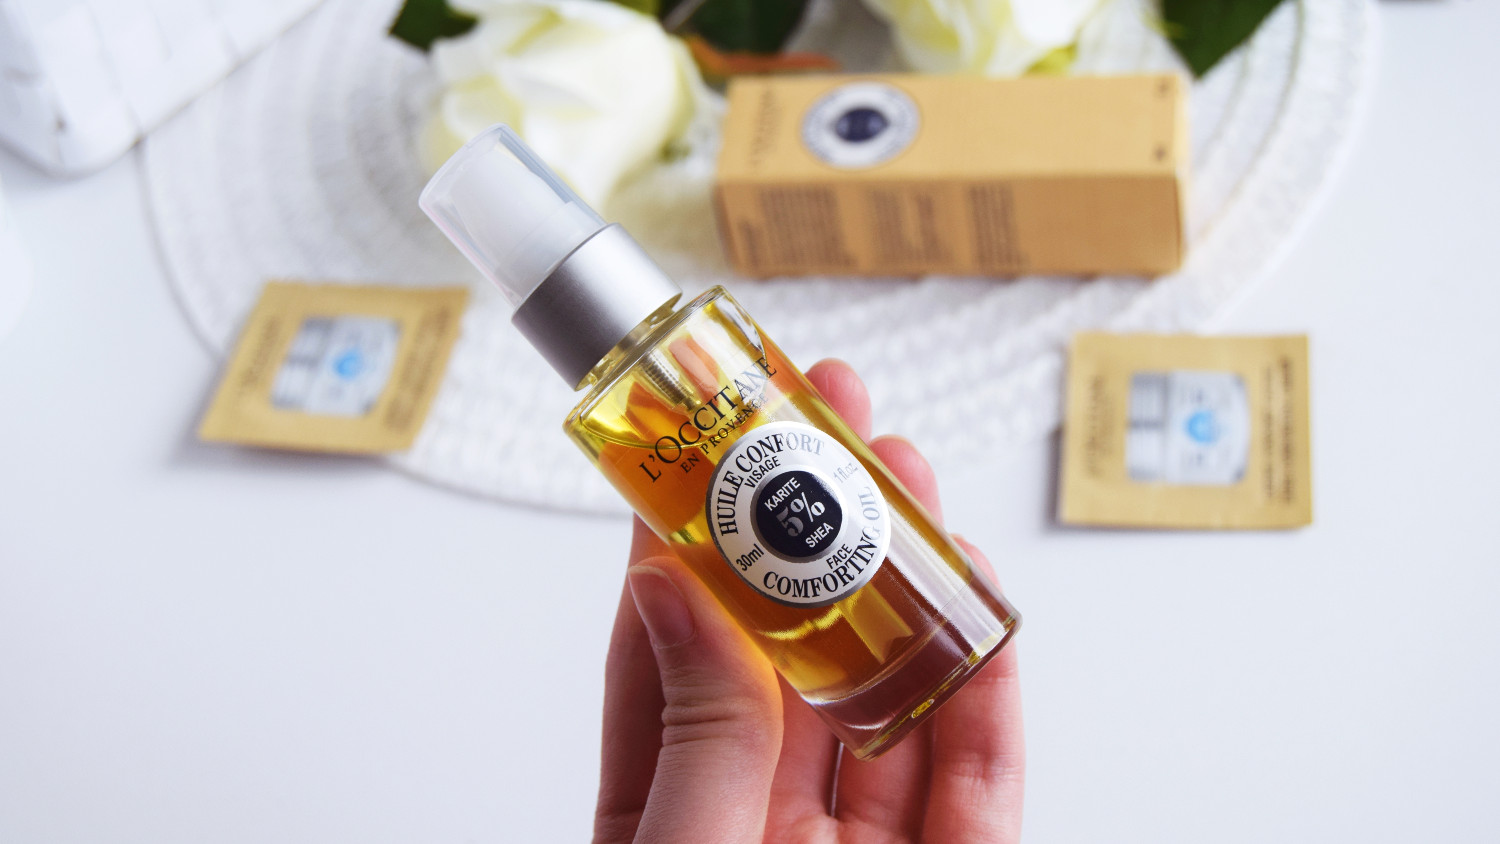 L'Occitane_face_oil_karite_shea_review_Zalabell_beauty_0